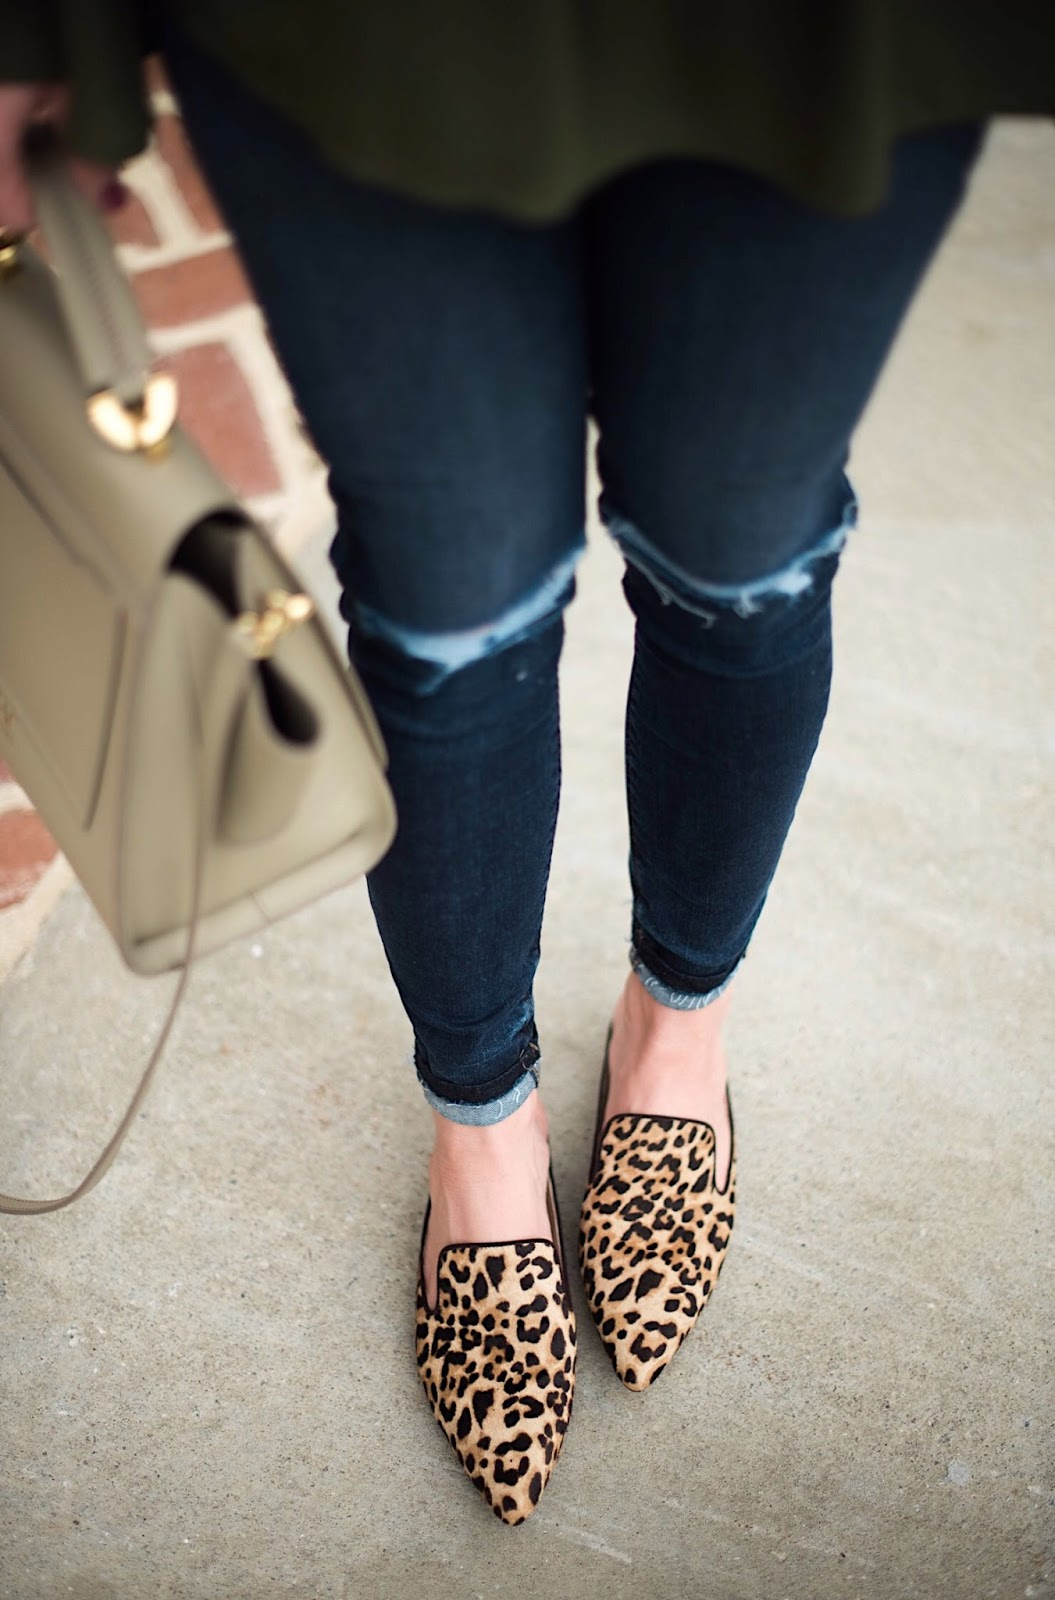 Sam Edelman Leopard Slides - Something Delightful Blog @racheltimmerman